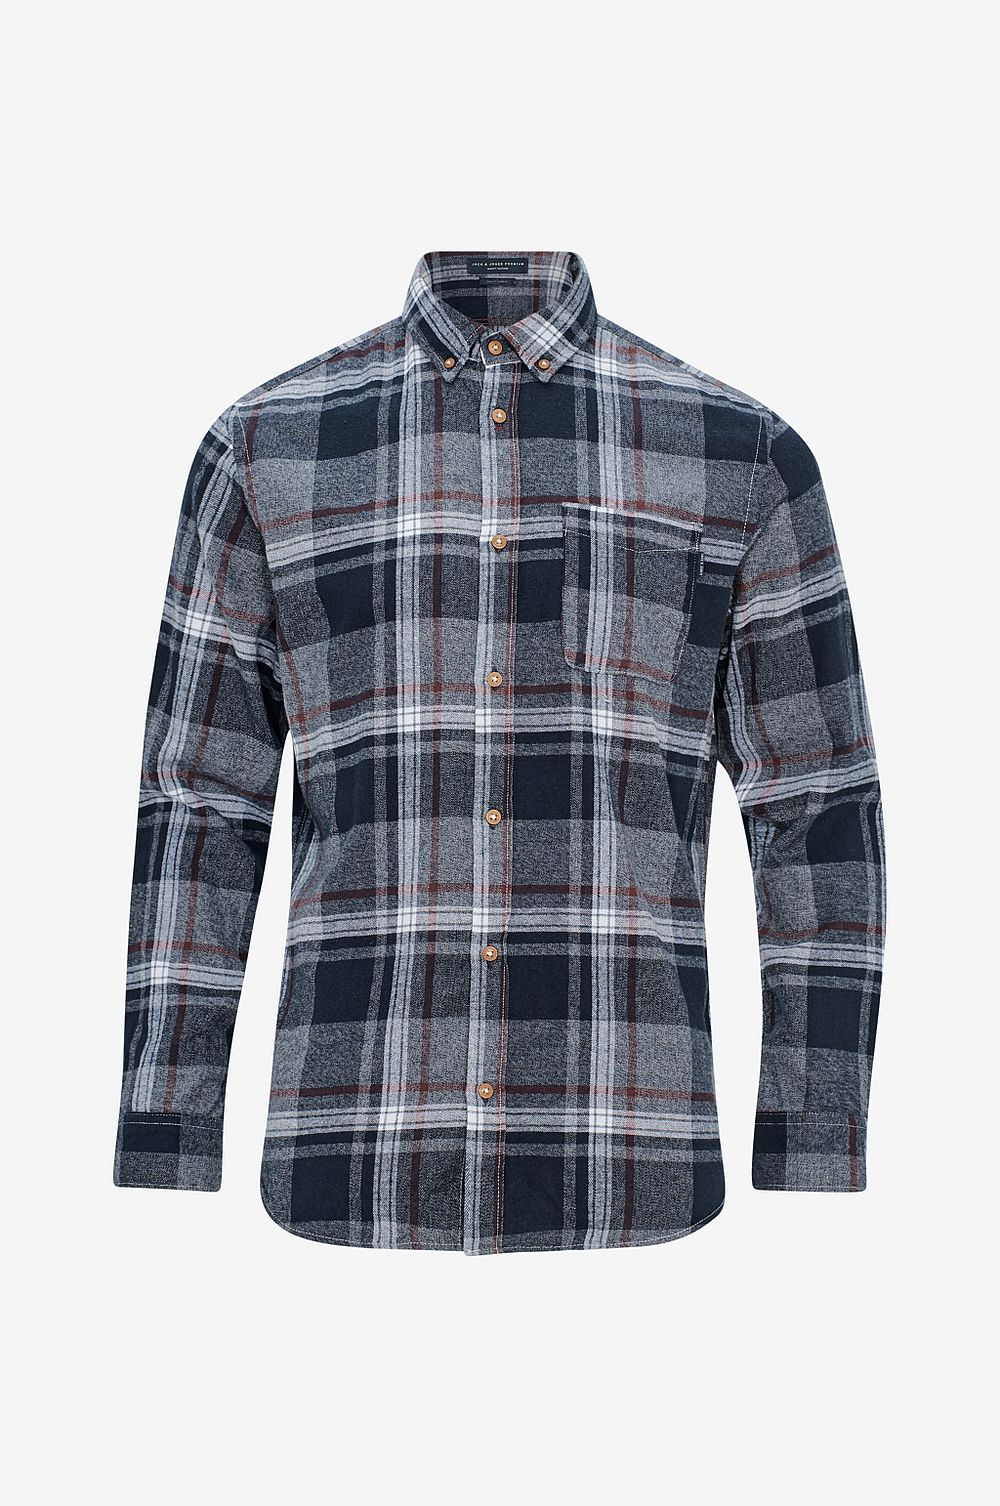 Jack & Jones Skjorta jprColumbo Check Shirt L S, slim fit - Grå - Herr